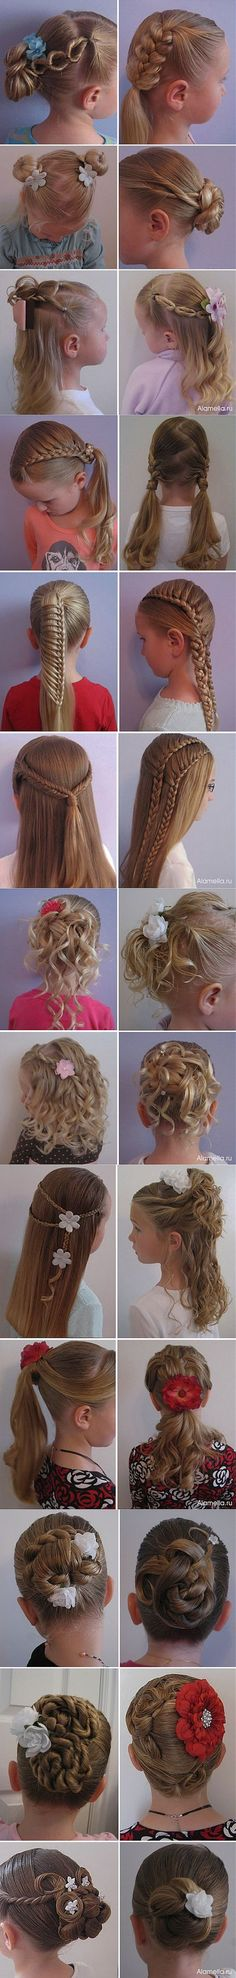 This would be fun to do on my future Niece sometime! XD